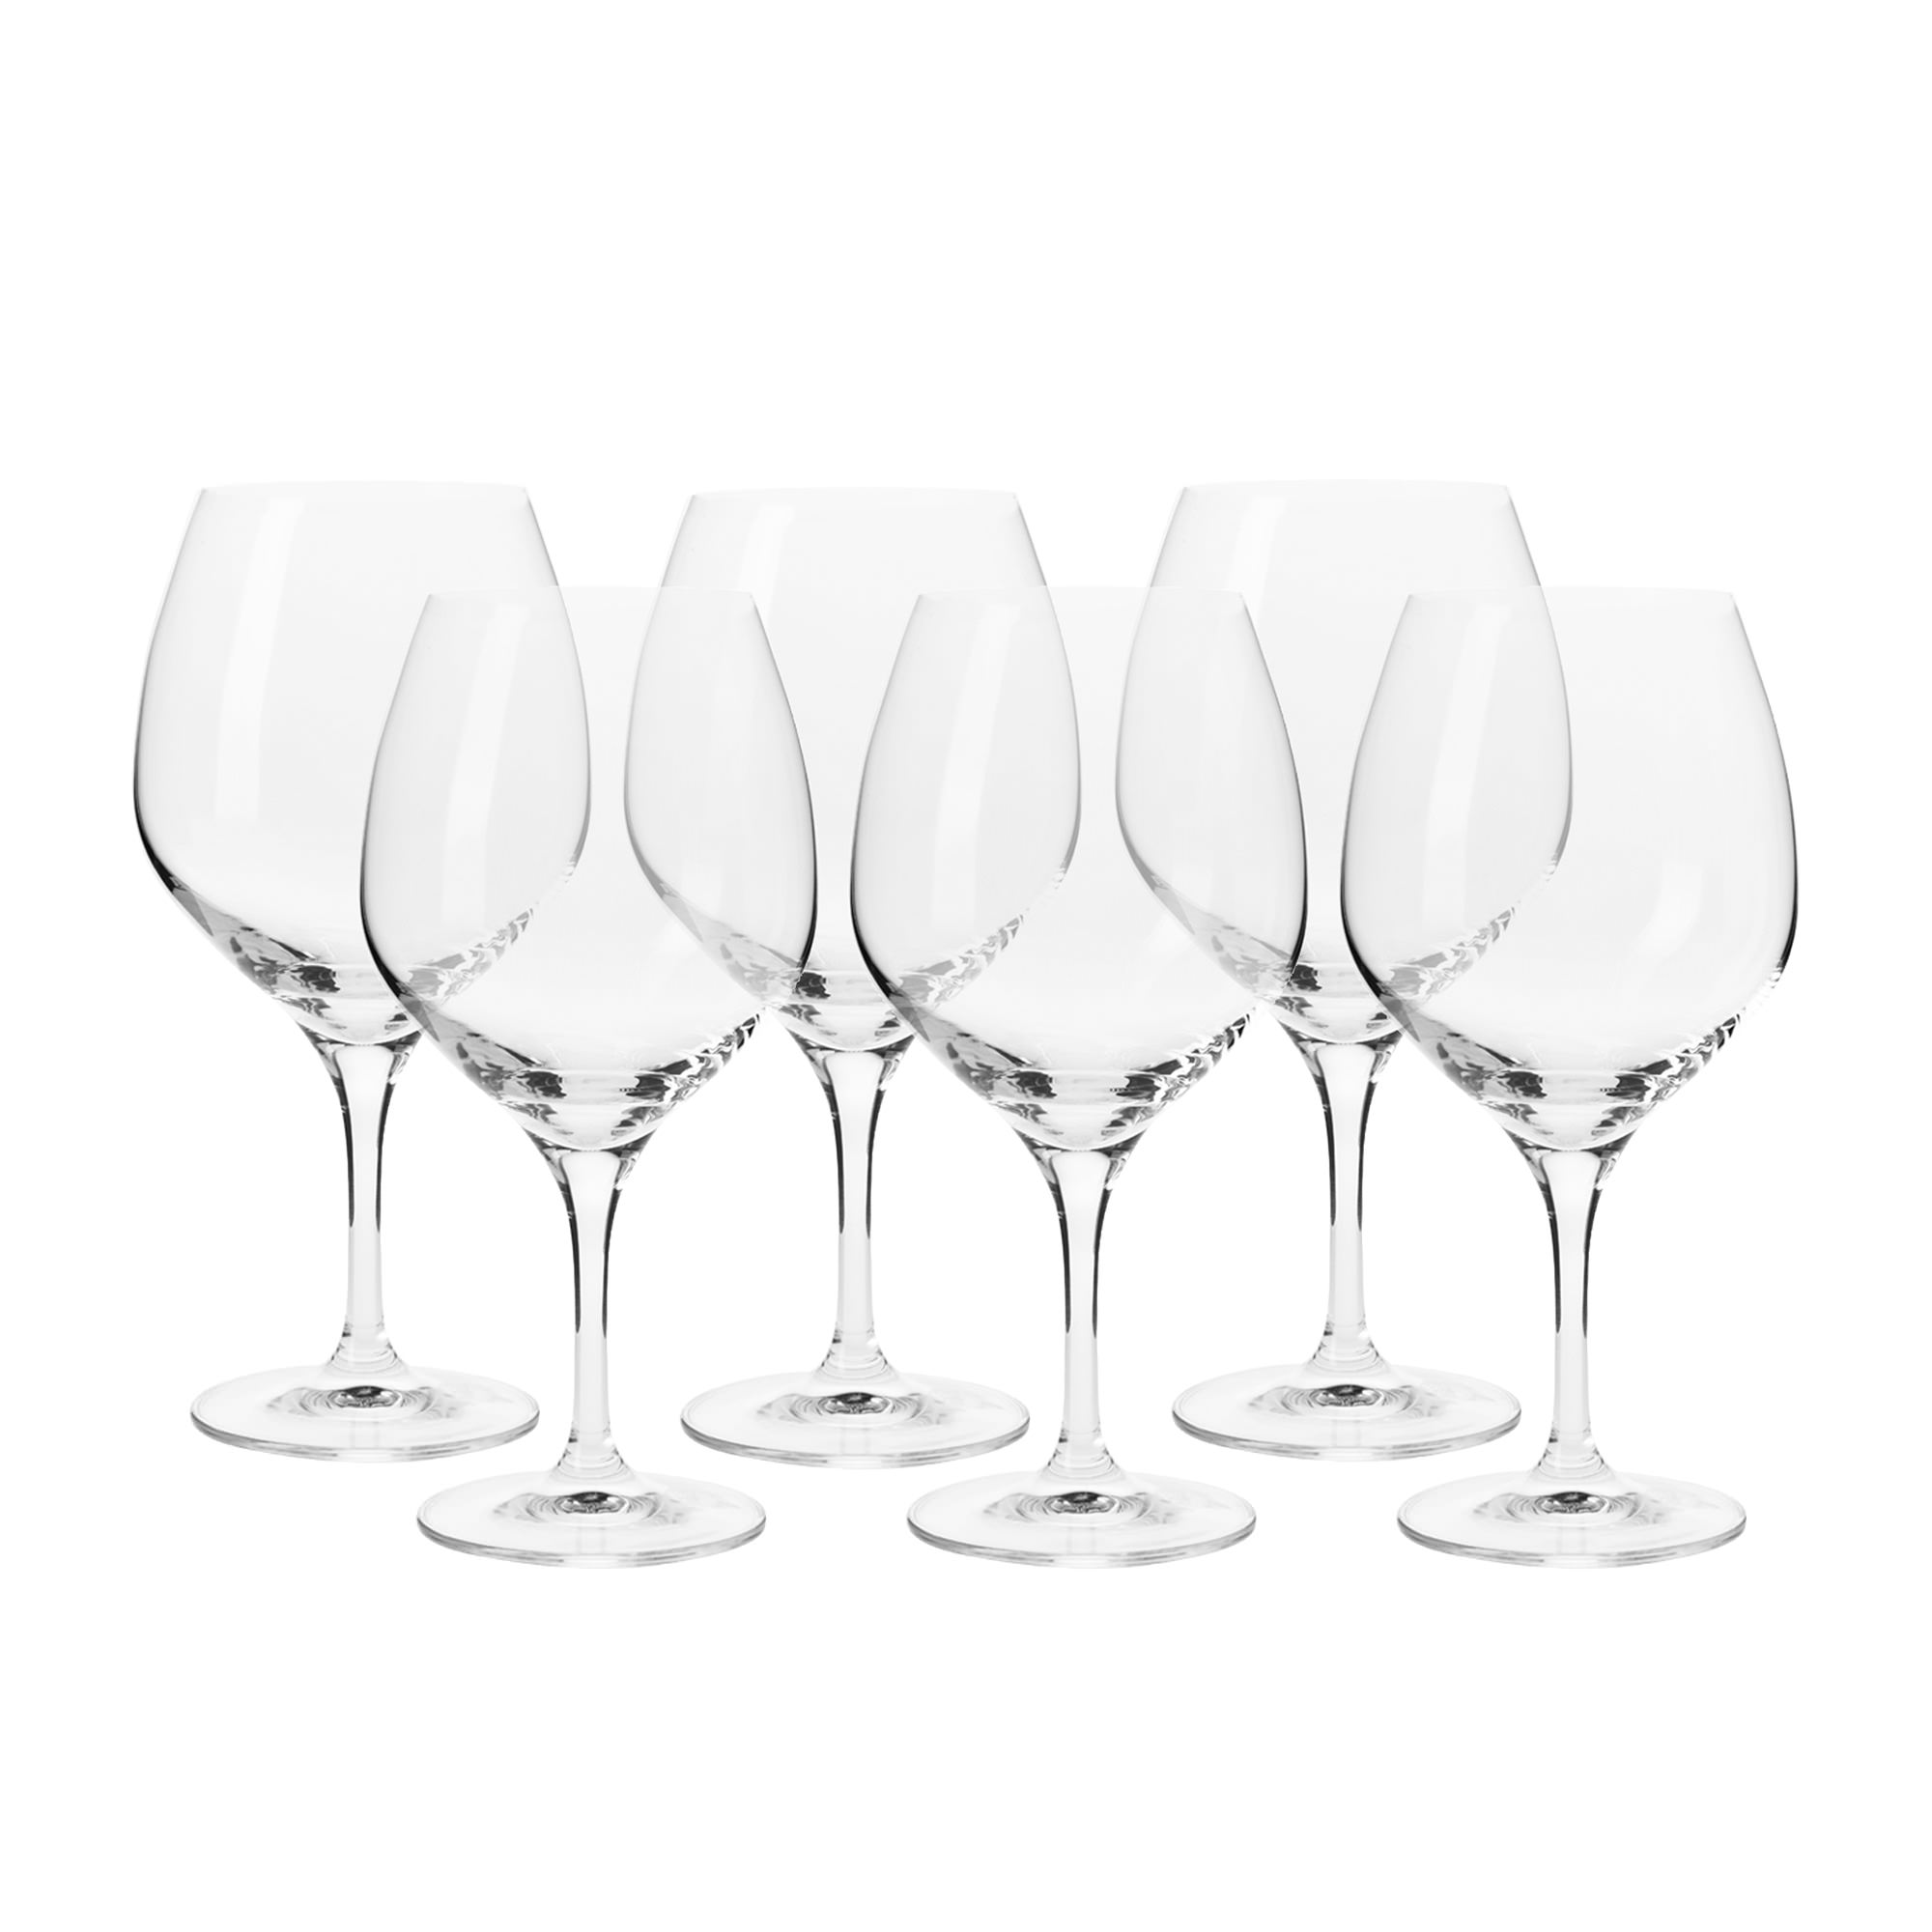 Krosno Harmony 6pc Pinot Glass Set 600ml